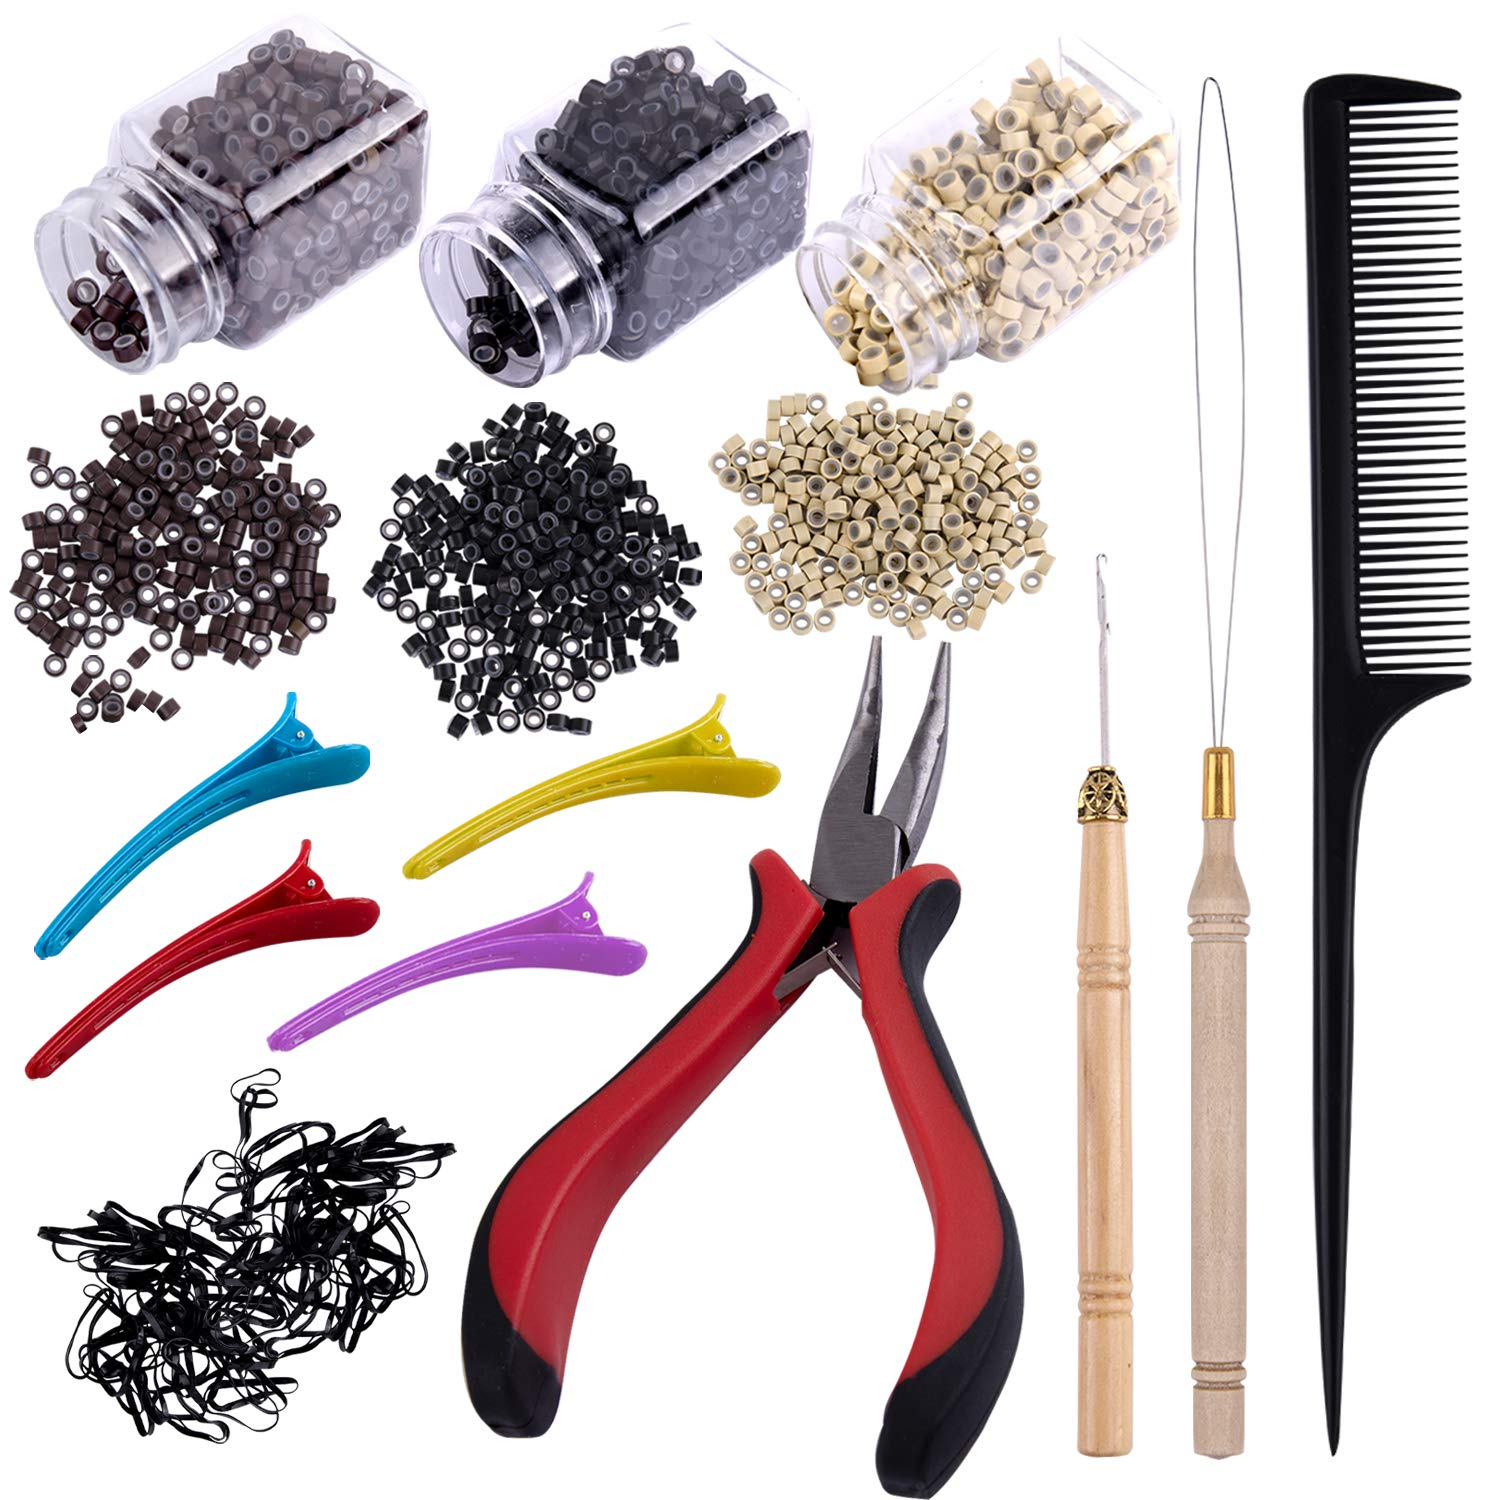 Duufin Hair Extensions Tools Kit 1500 Pcs Micro Ring Beads(Black, Blonde and Brown) 1 Micro Beads Plier 2 Hook Needle Pulling Loop 4 Plastic Alligator Clips 1 Comb and 2 Bags Black Mini Rubber Bands